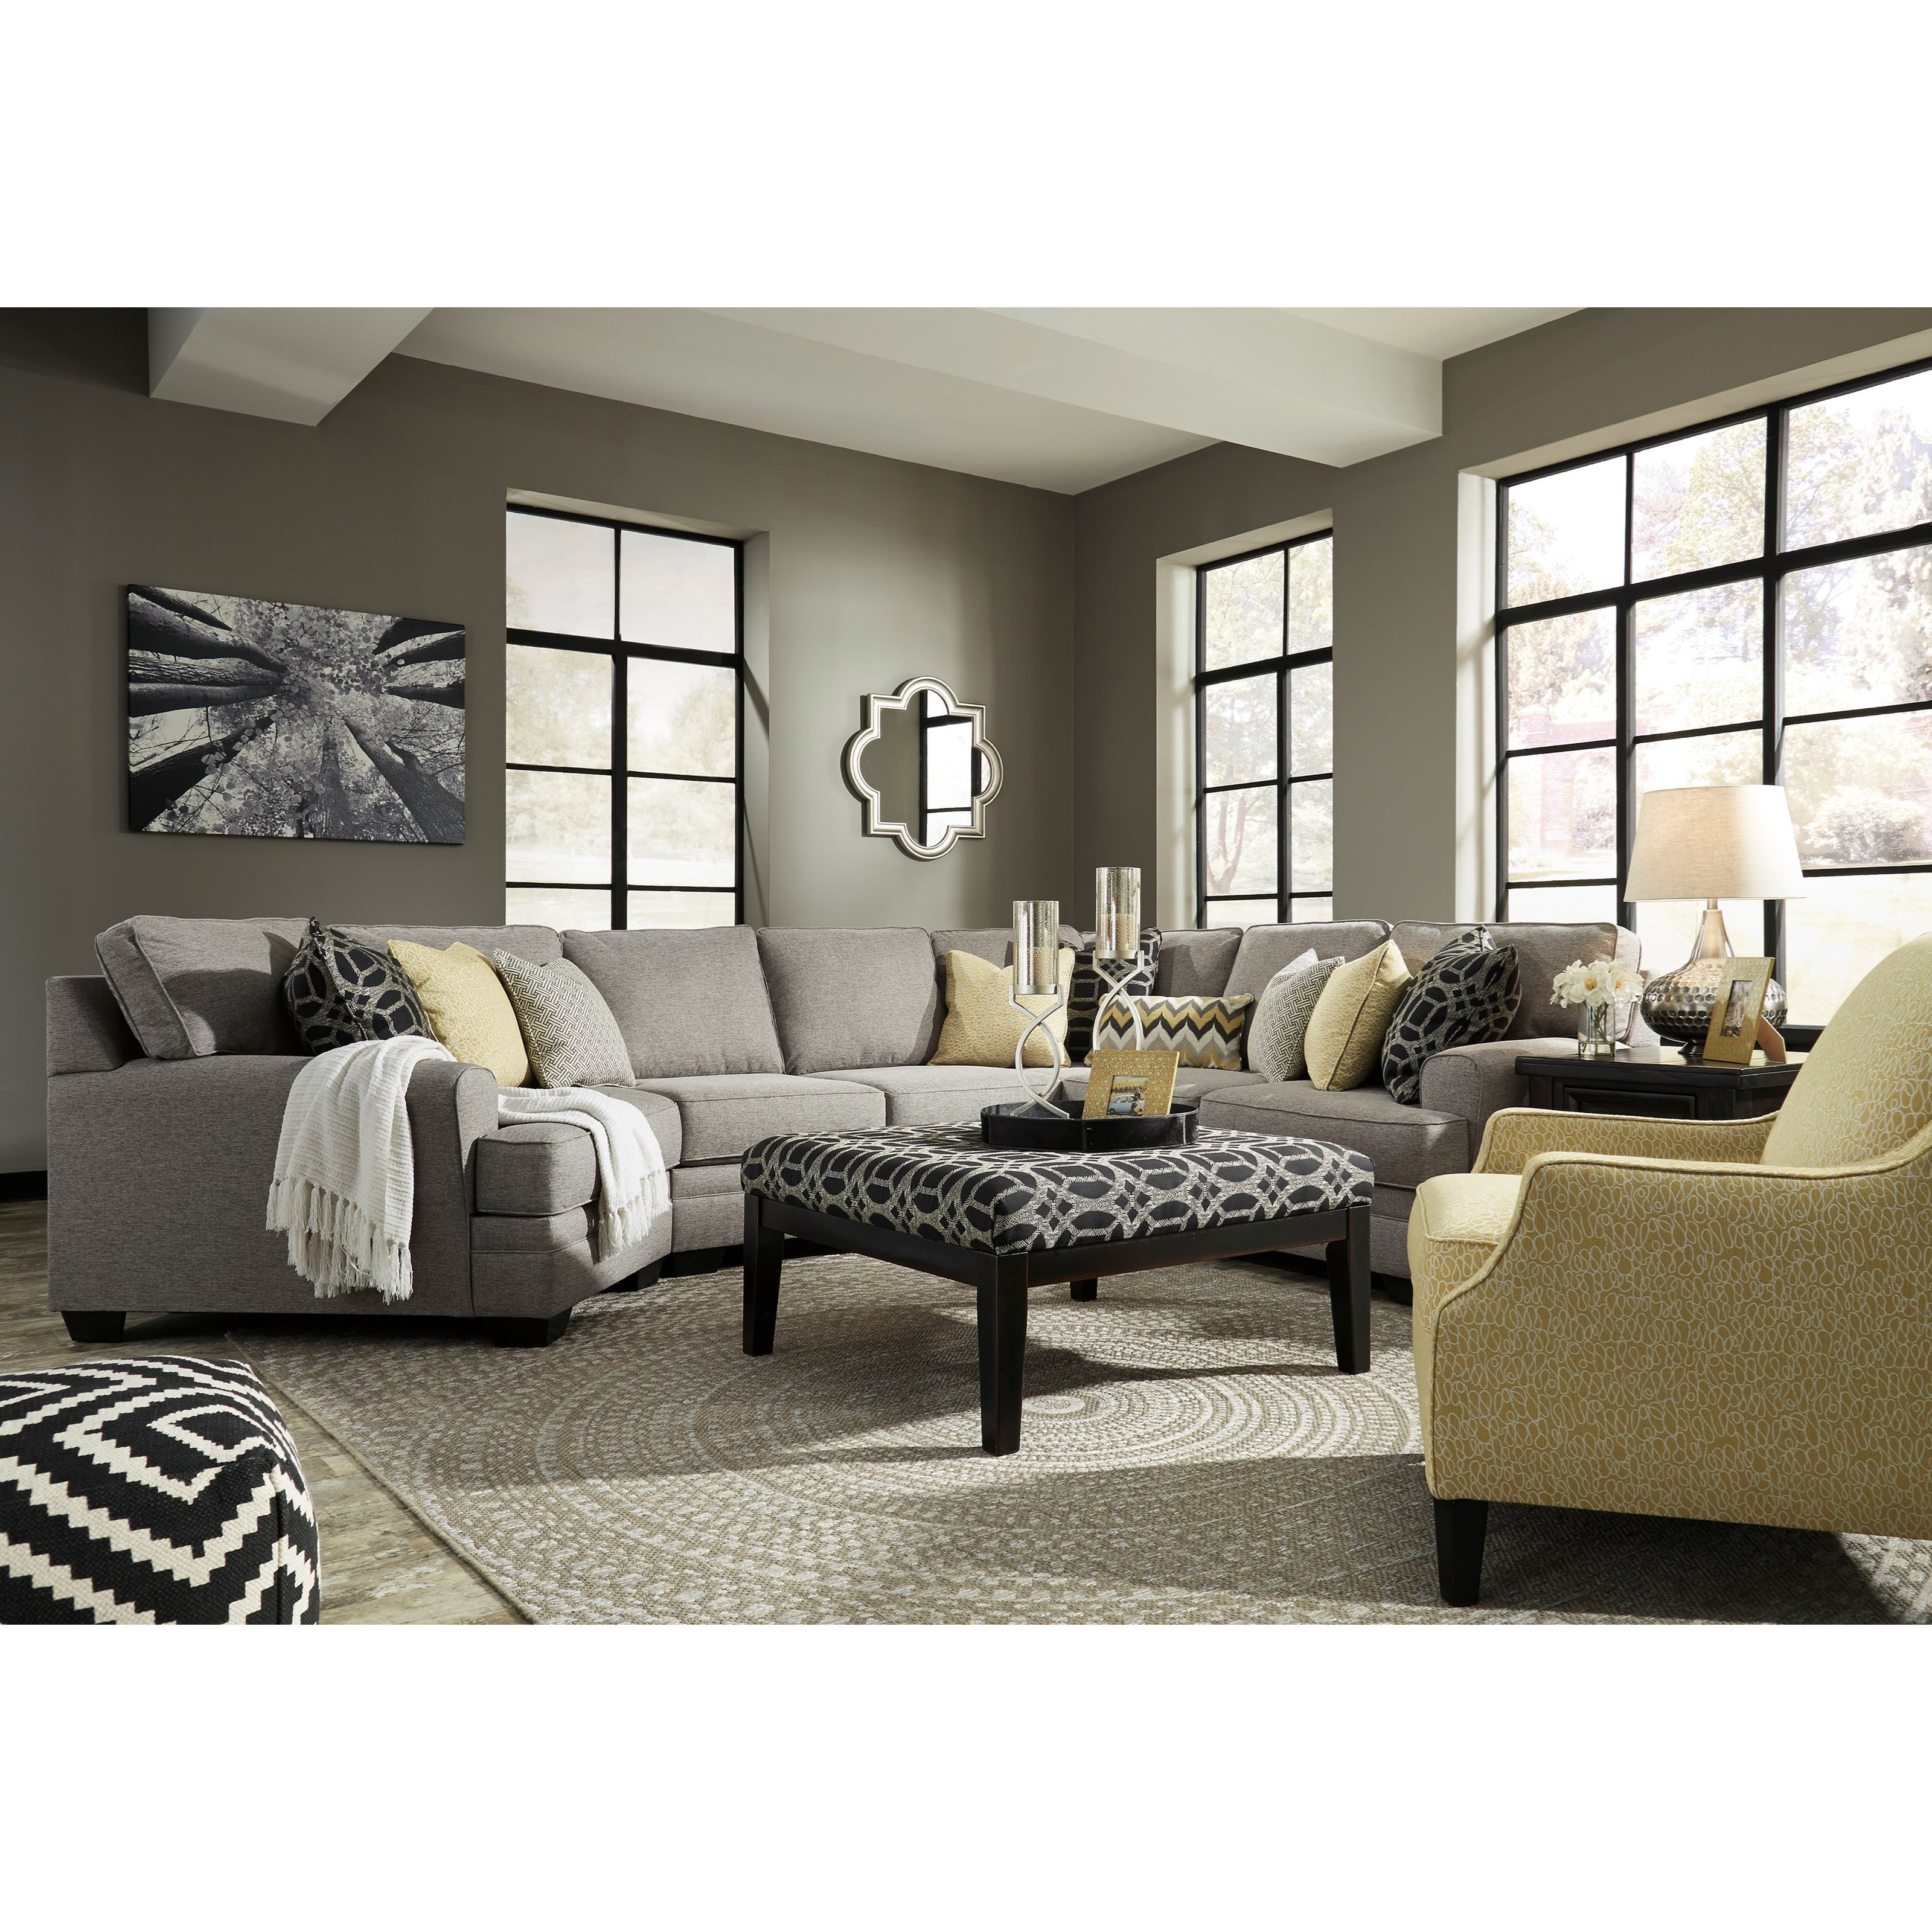 Benchcraft Cresson Stationary Living Room Group - Item Number: 54907 Living Room Group 14